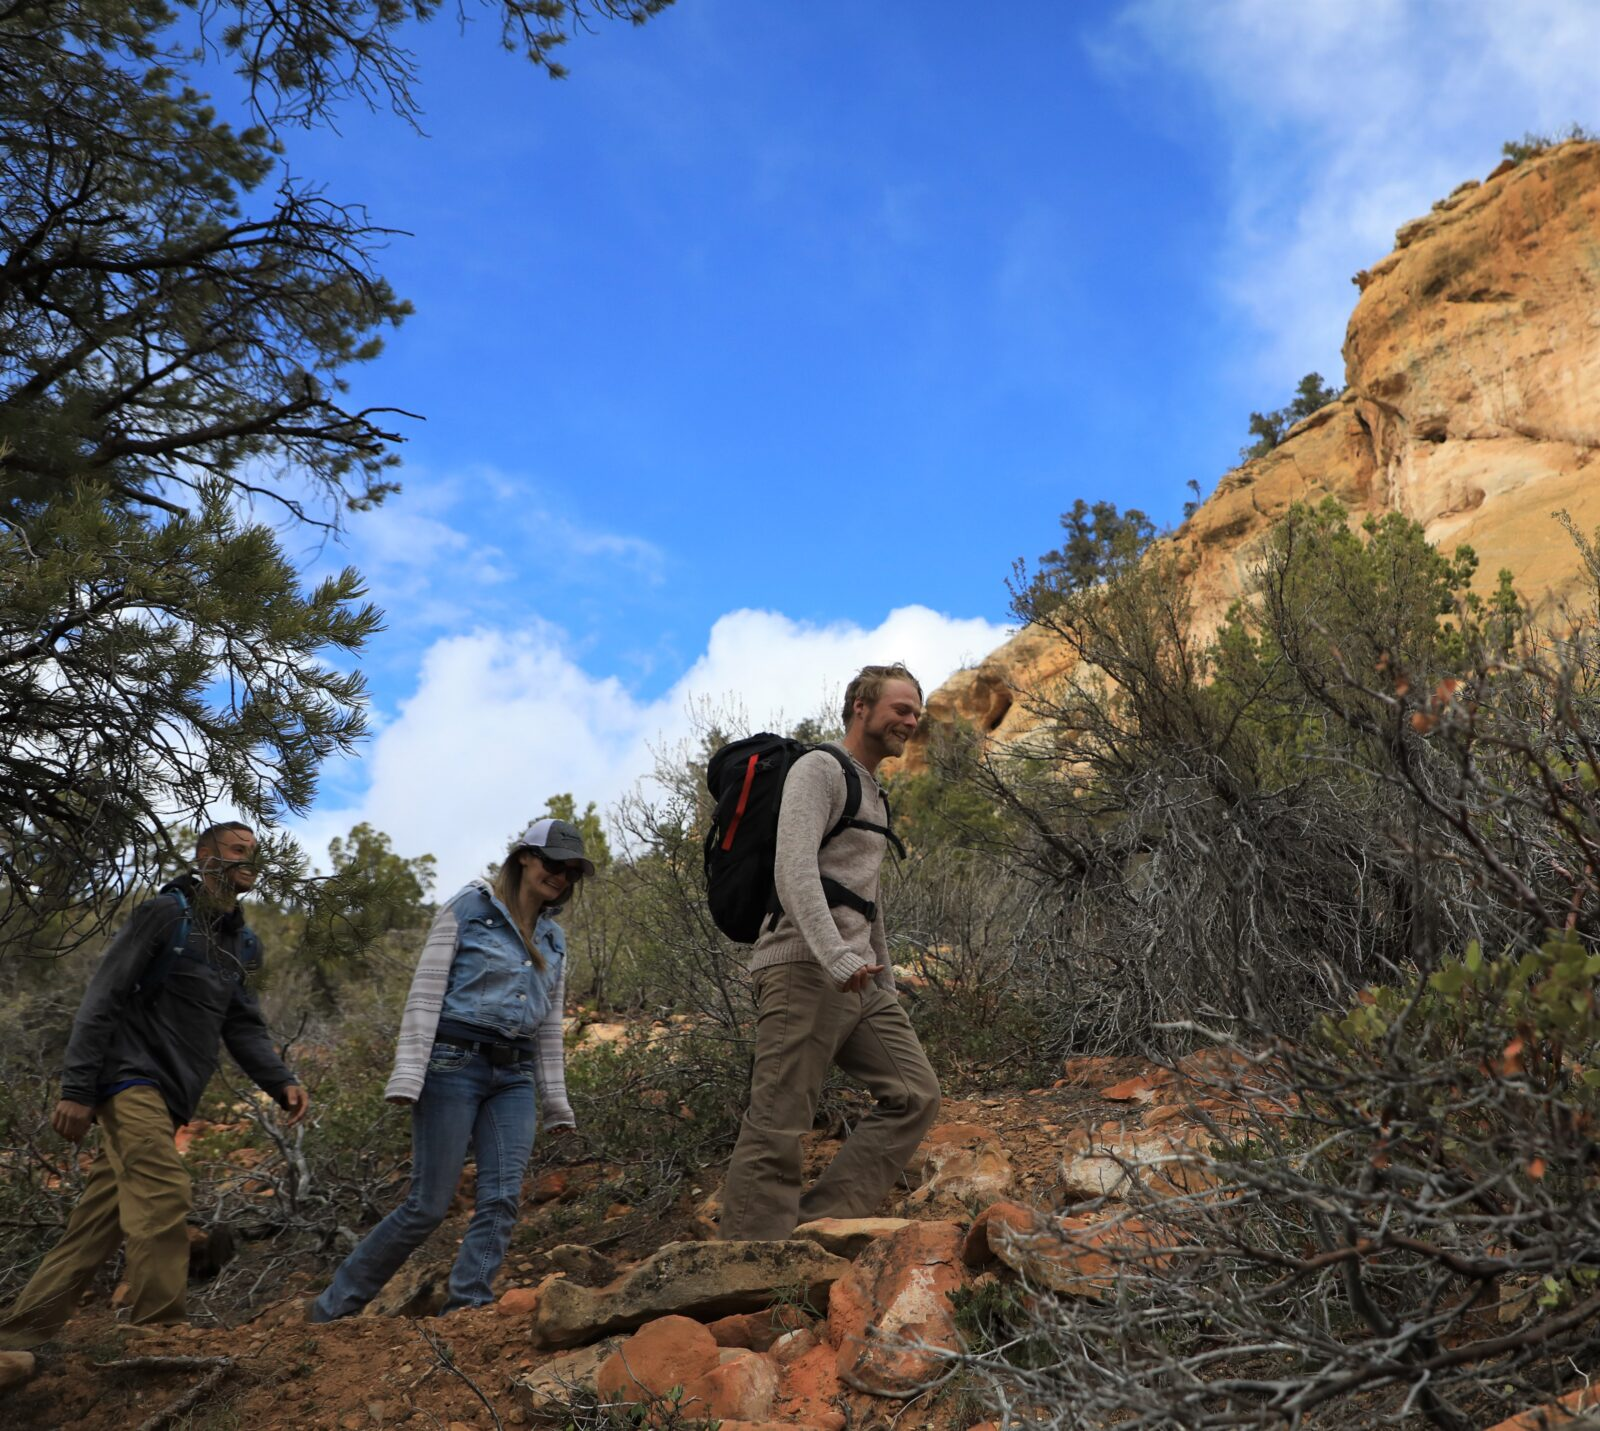 Guided hiking in zion